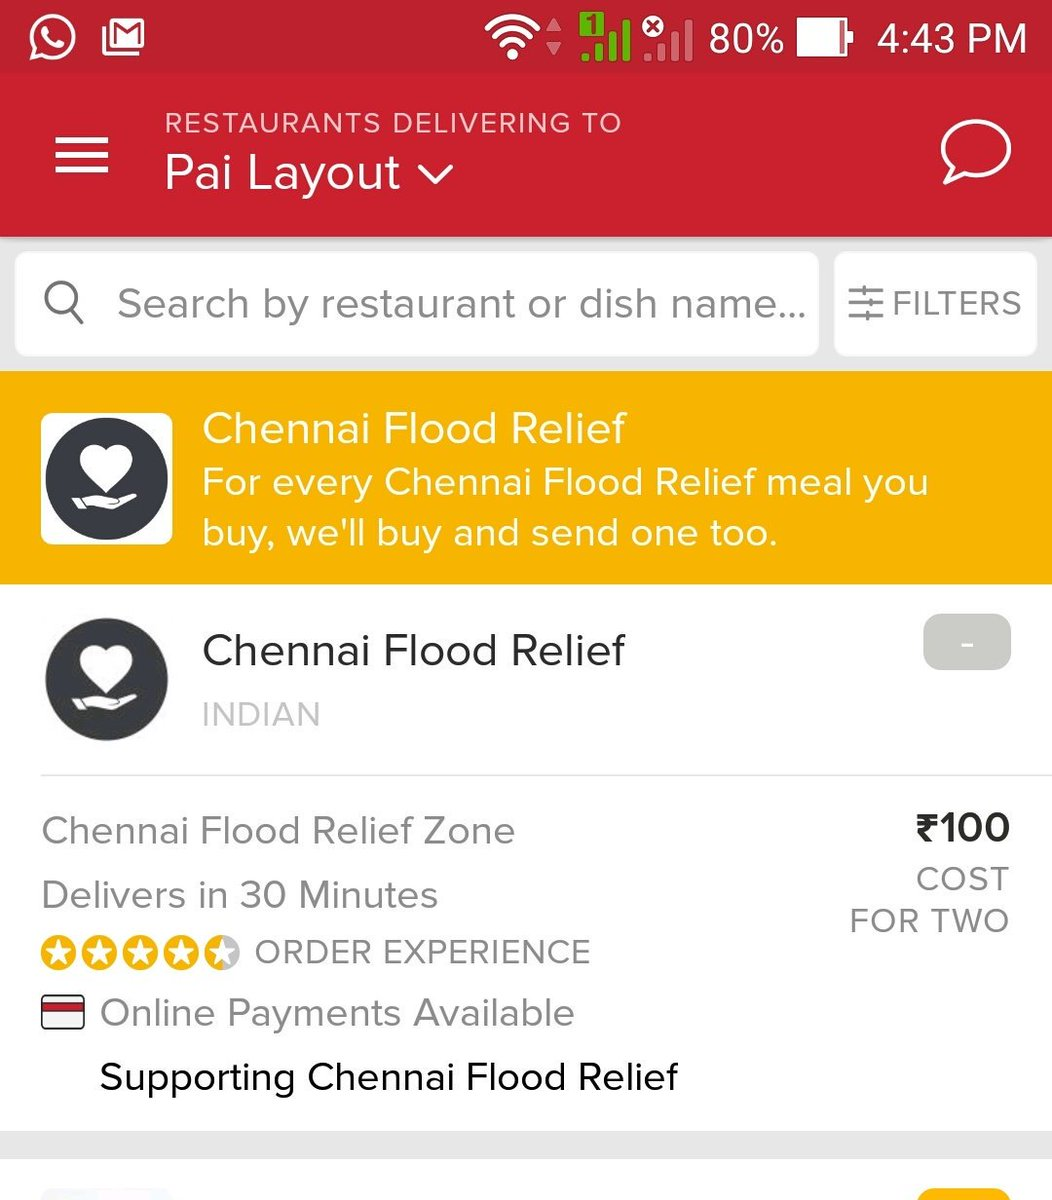 #ChennaiFloods Zomato's Order app is helping deliver food for ppl in #ChennaiRainsHelp app: https://t.co/BMYe6Yj0QC https://t.co/mS5Vp5ZA3y